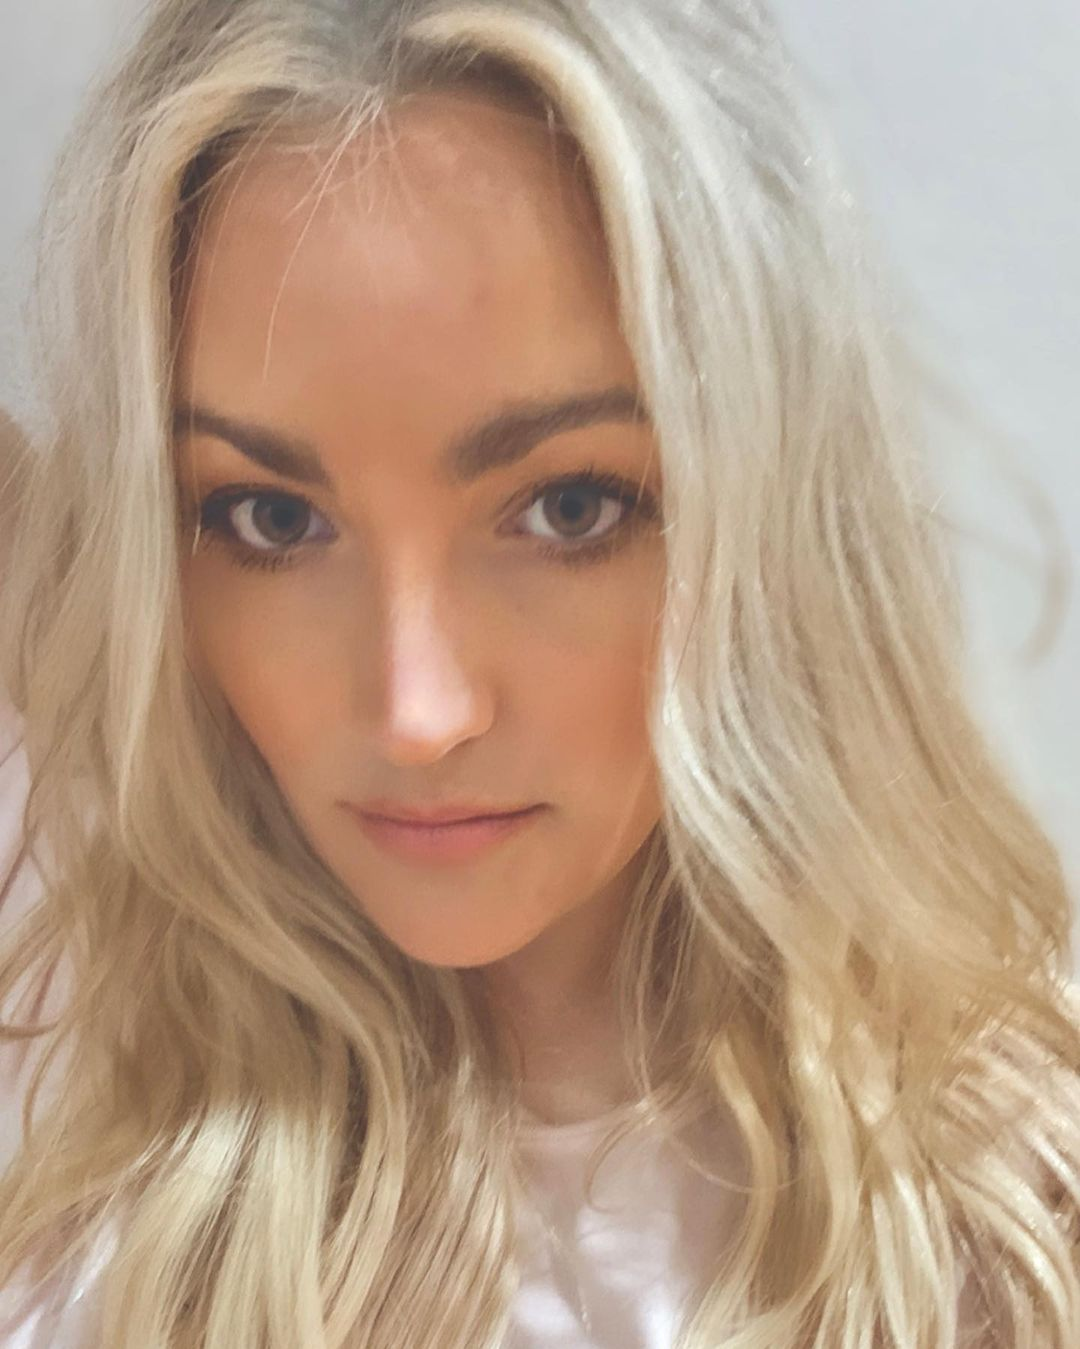 What is the Net worth of Popular Actress of an Age Jamie Lynn Spears 2